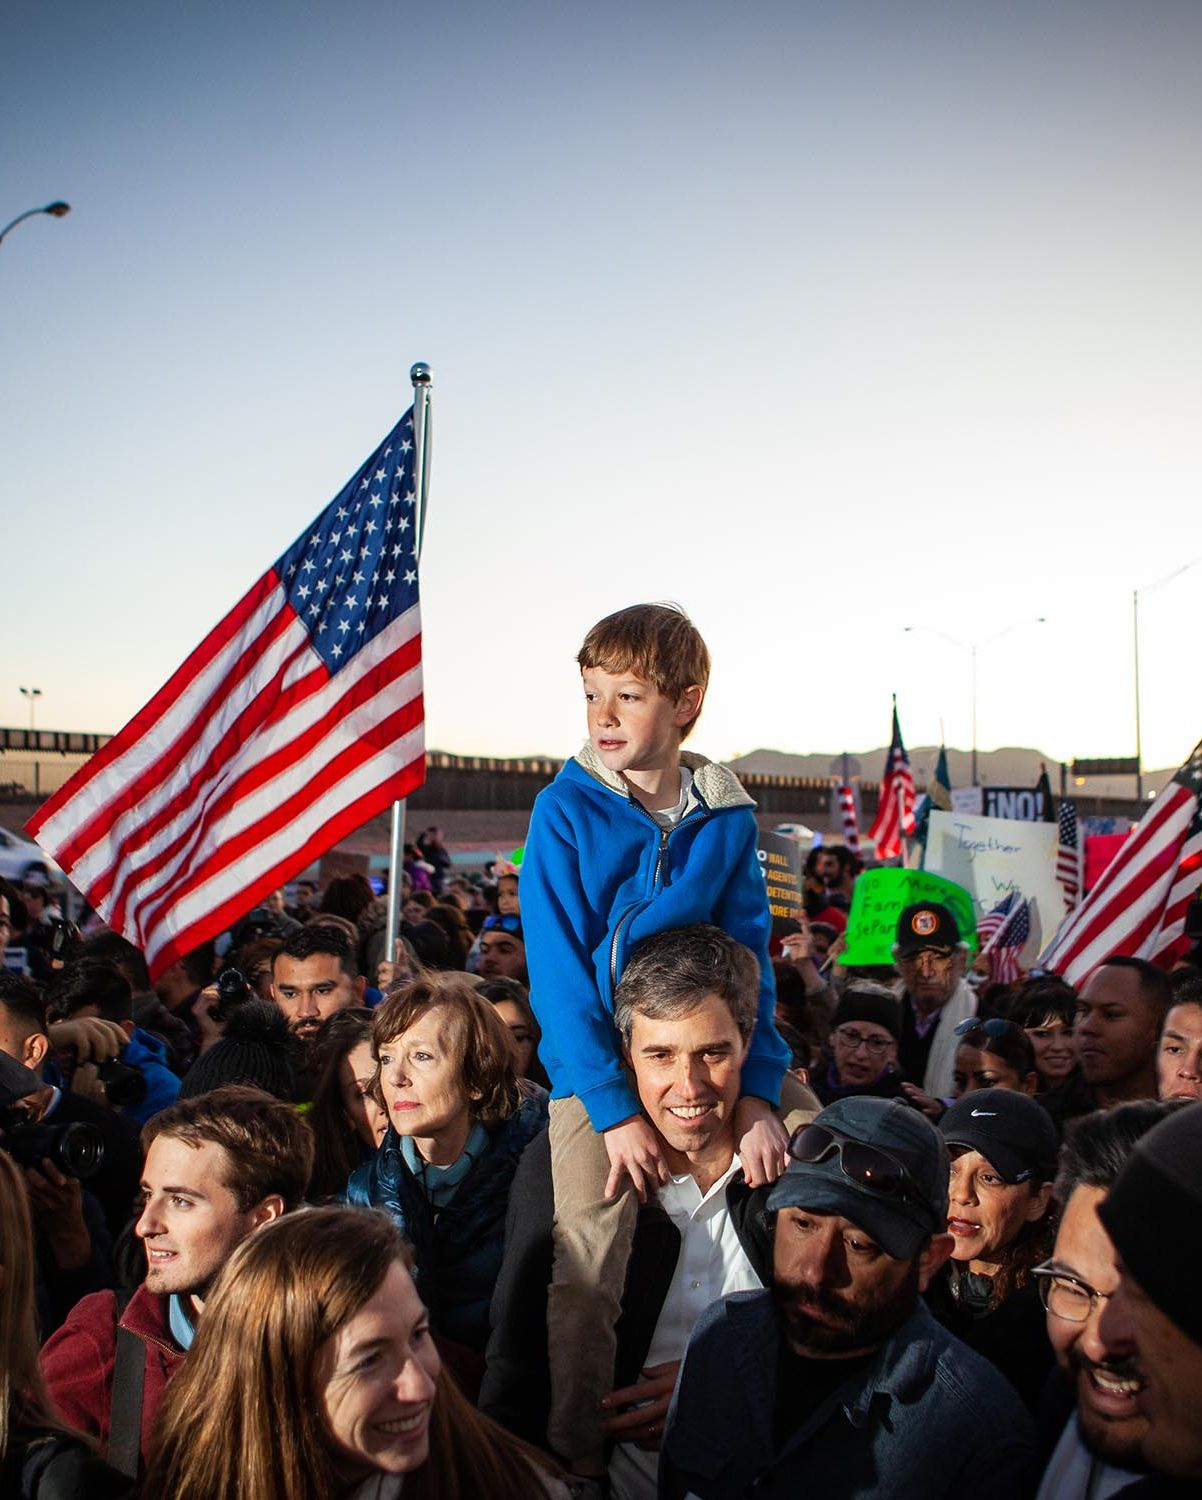 Beto O'Rourke carries his son Henry O'Rourke on his shoulder as they march along the US Mexico border in protest of President Donald Trump's proposed border wall, February 11, 2019 in El Paso, Texas.